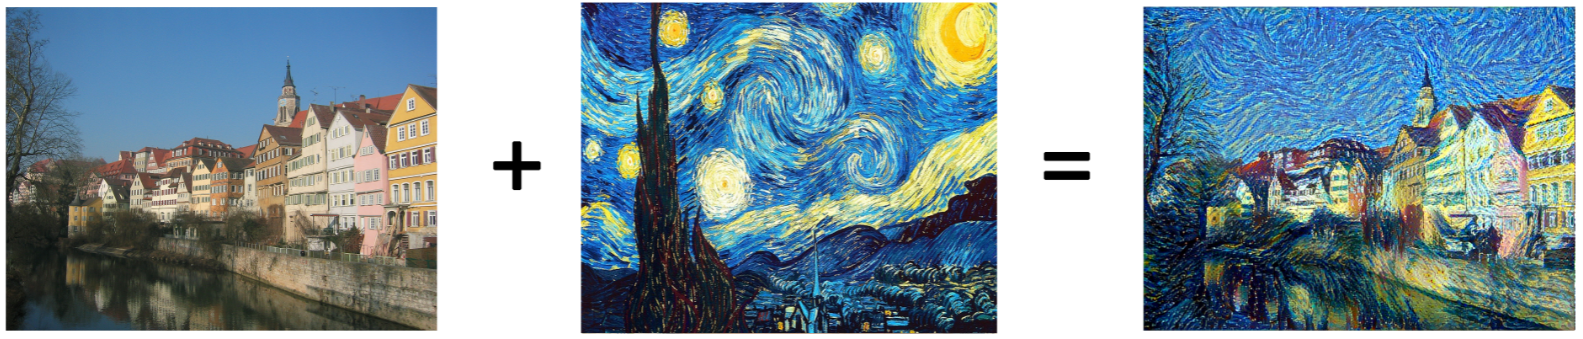 style_transfer_gogh.PNG